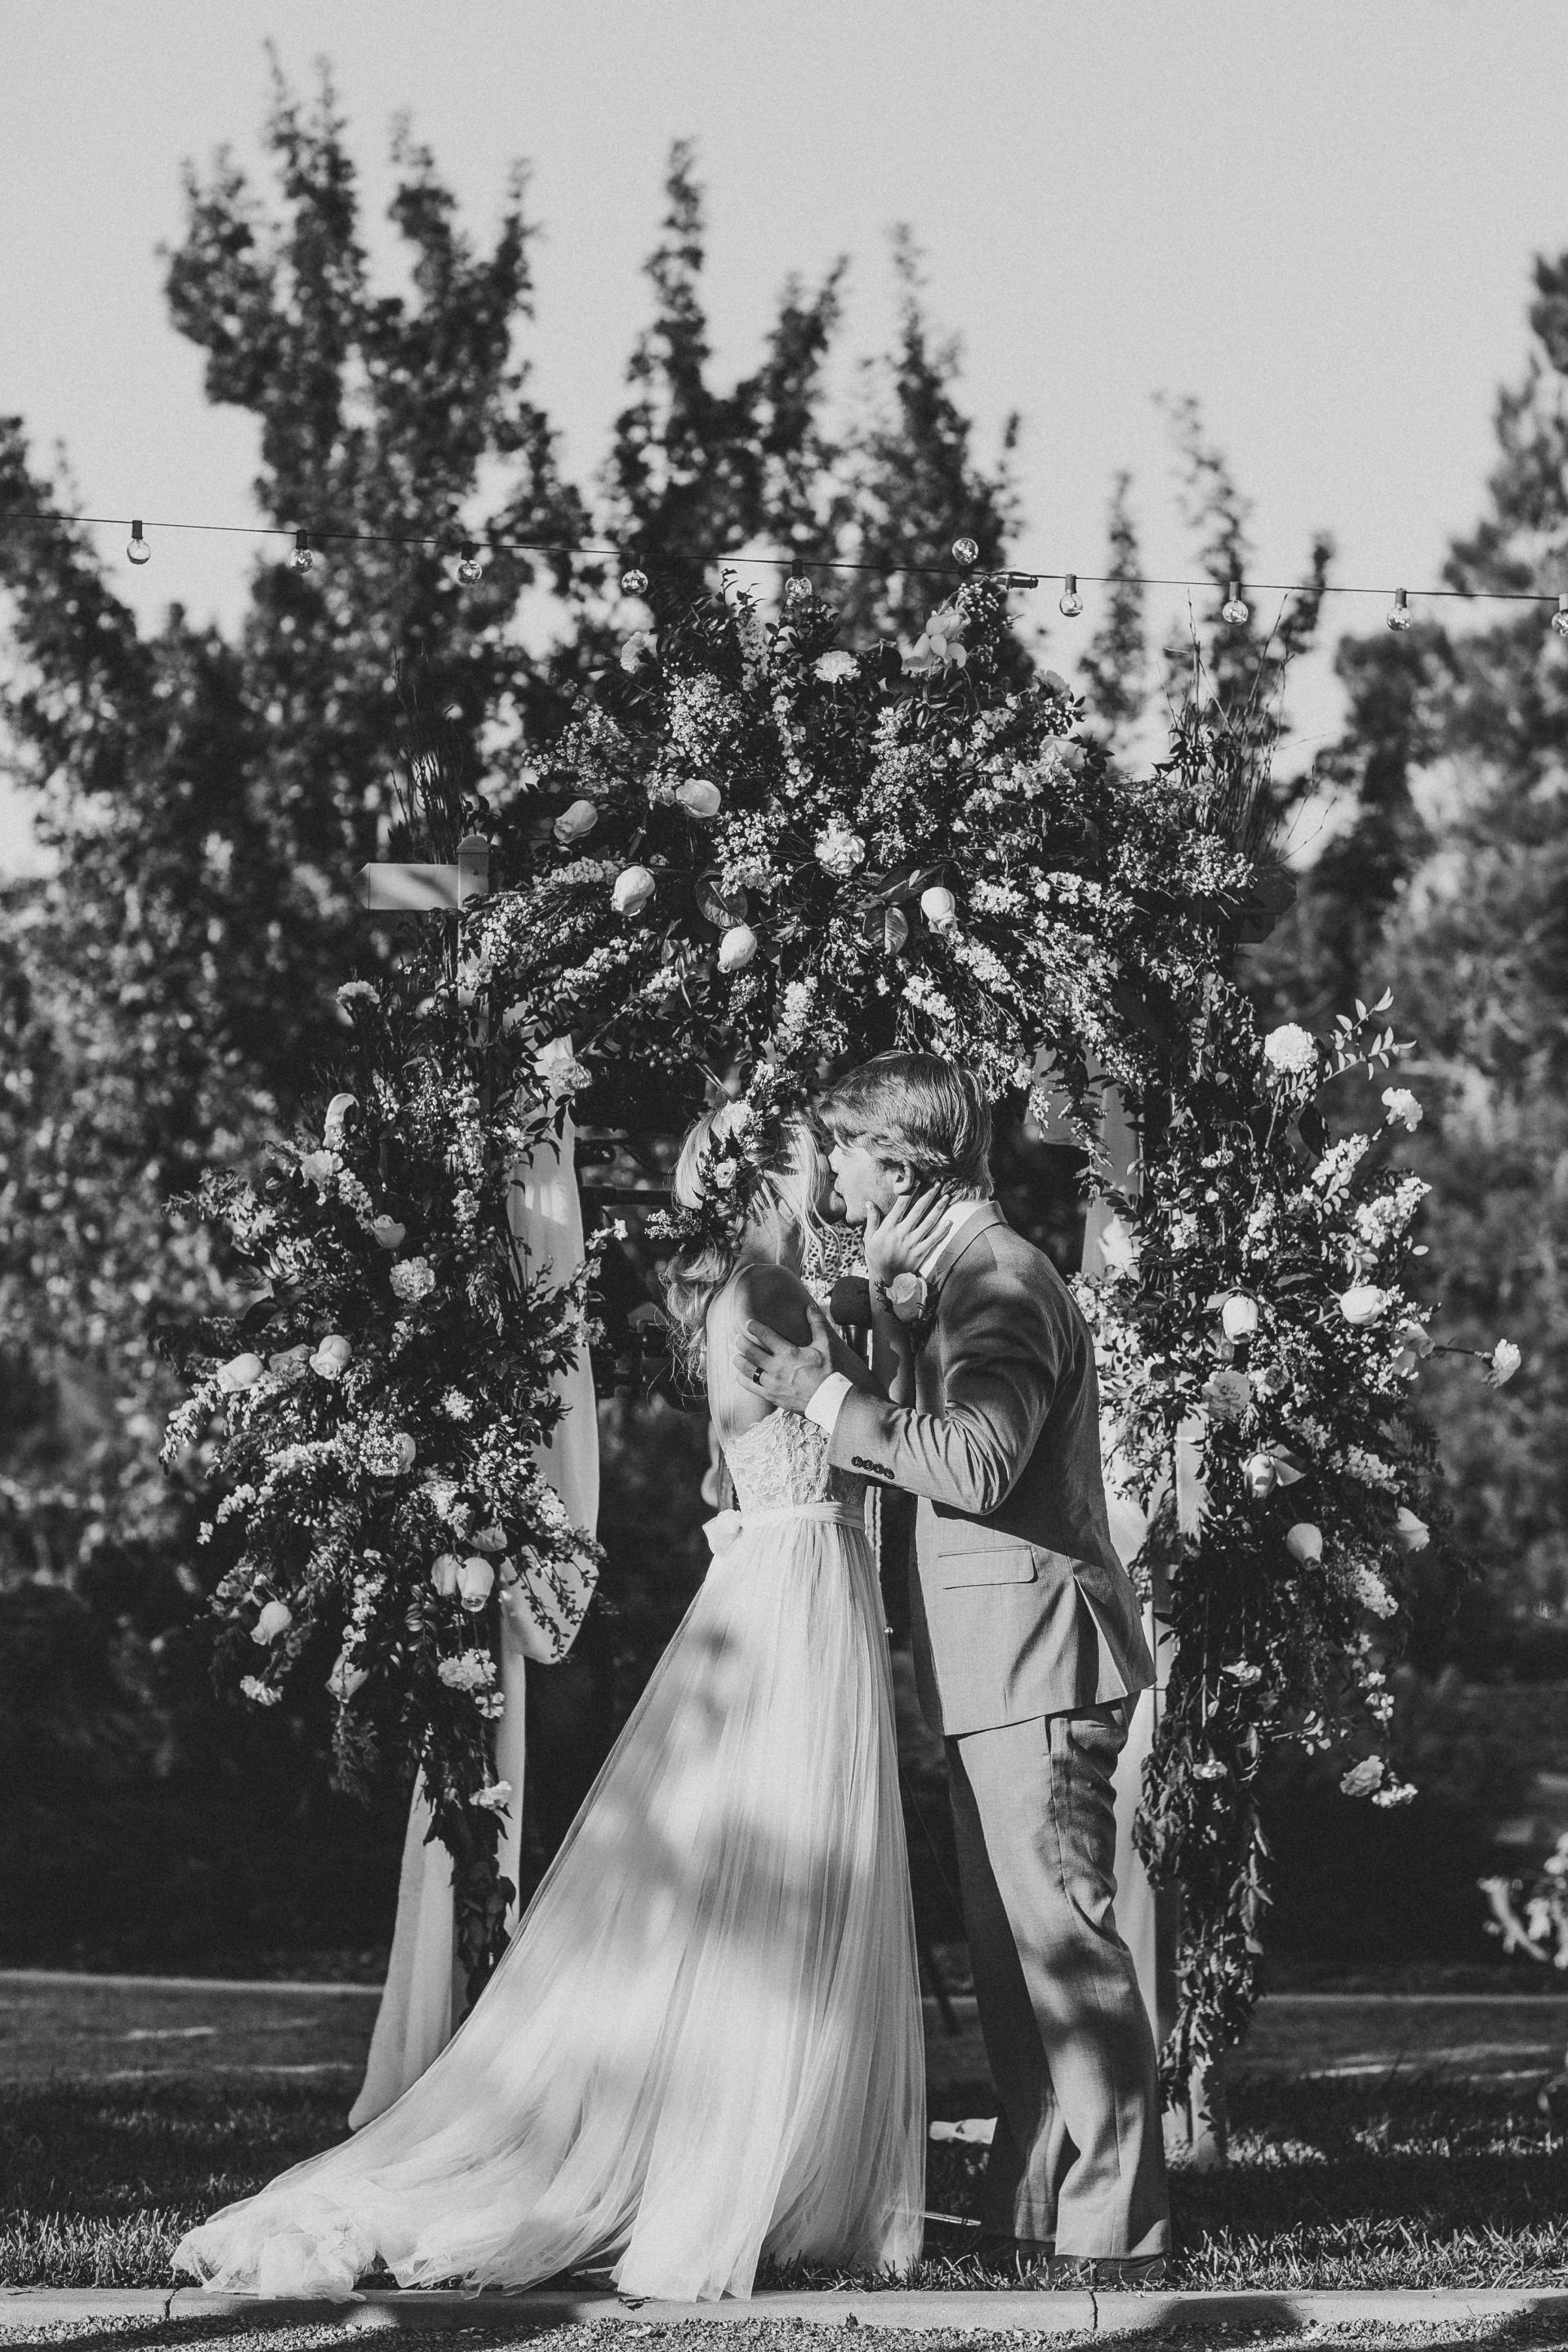 Aspyn+Parker-weddingday_tyfrenchphoto-5469